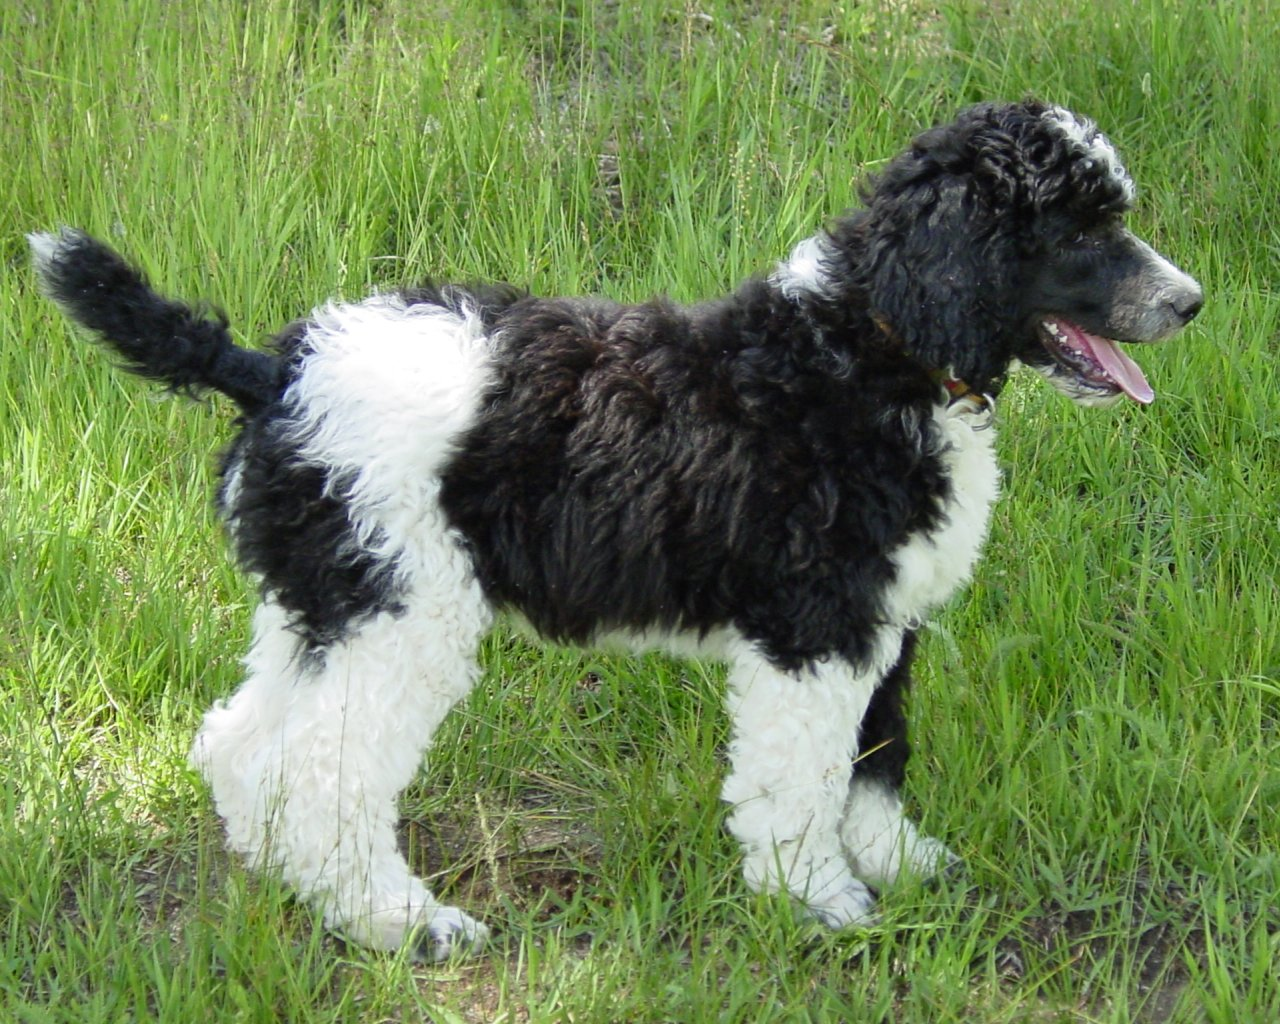 DOG BREEDS TOP 10 According to IQ TEST: Poodle